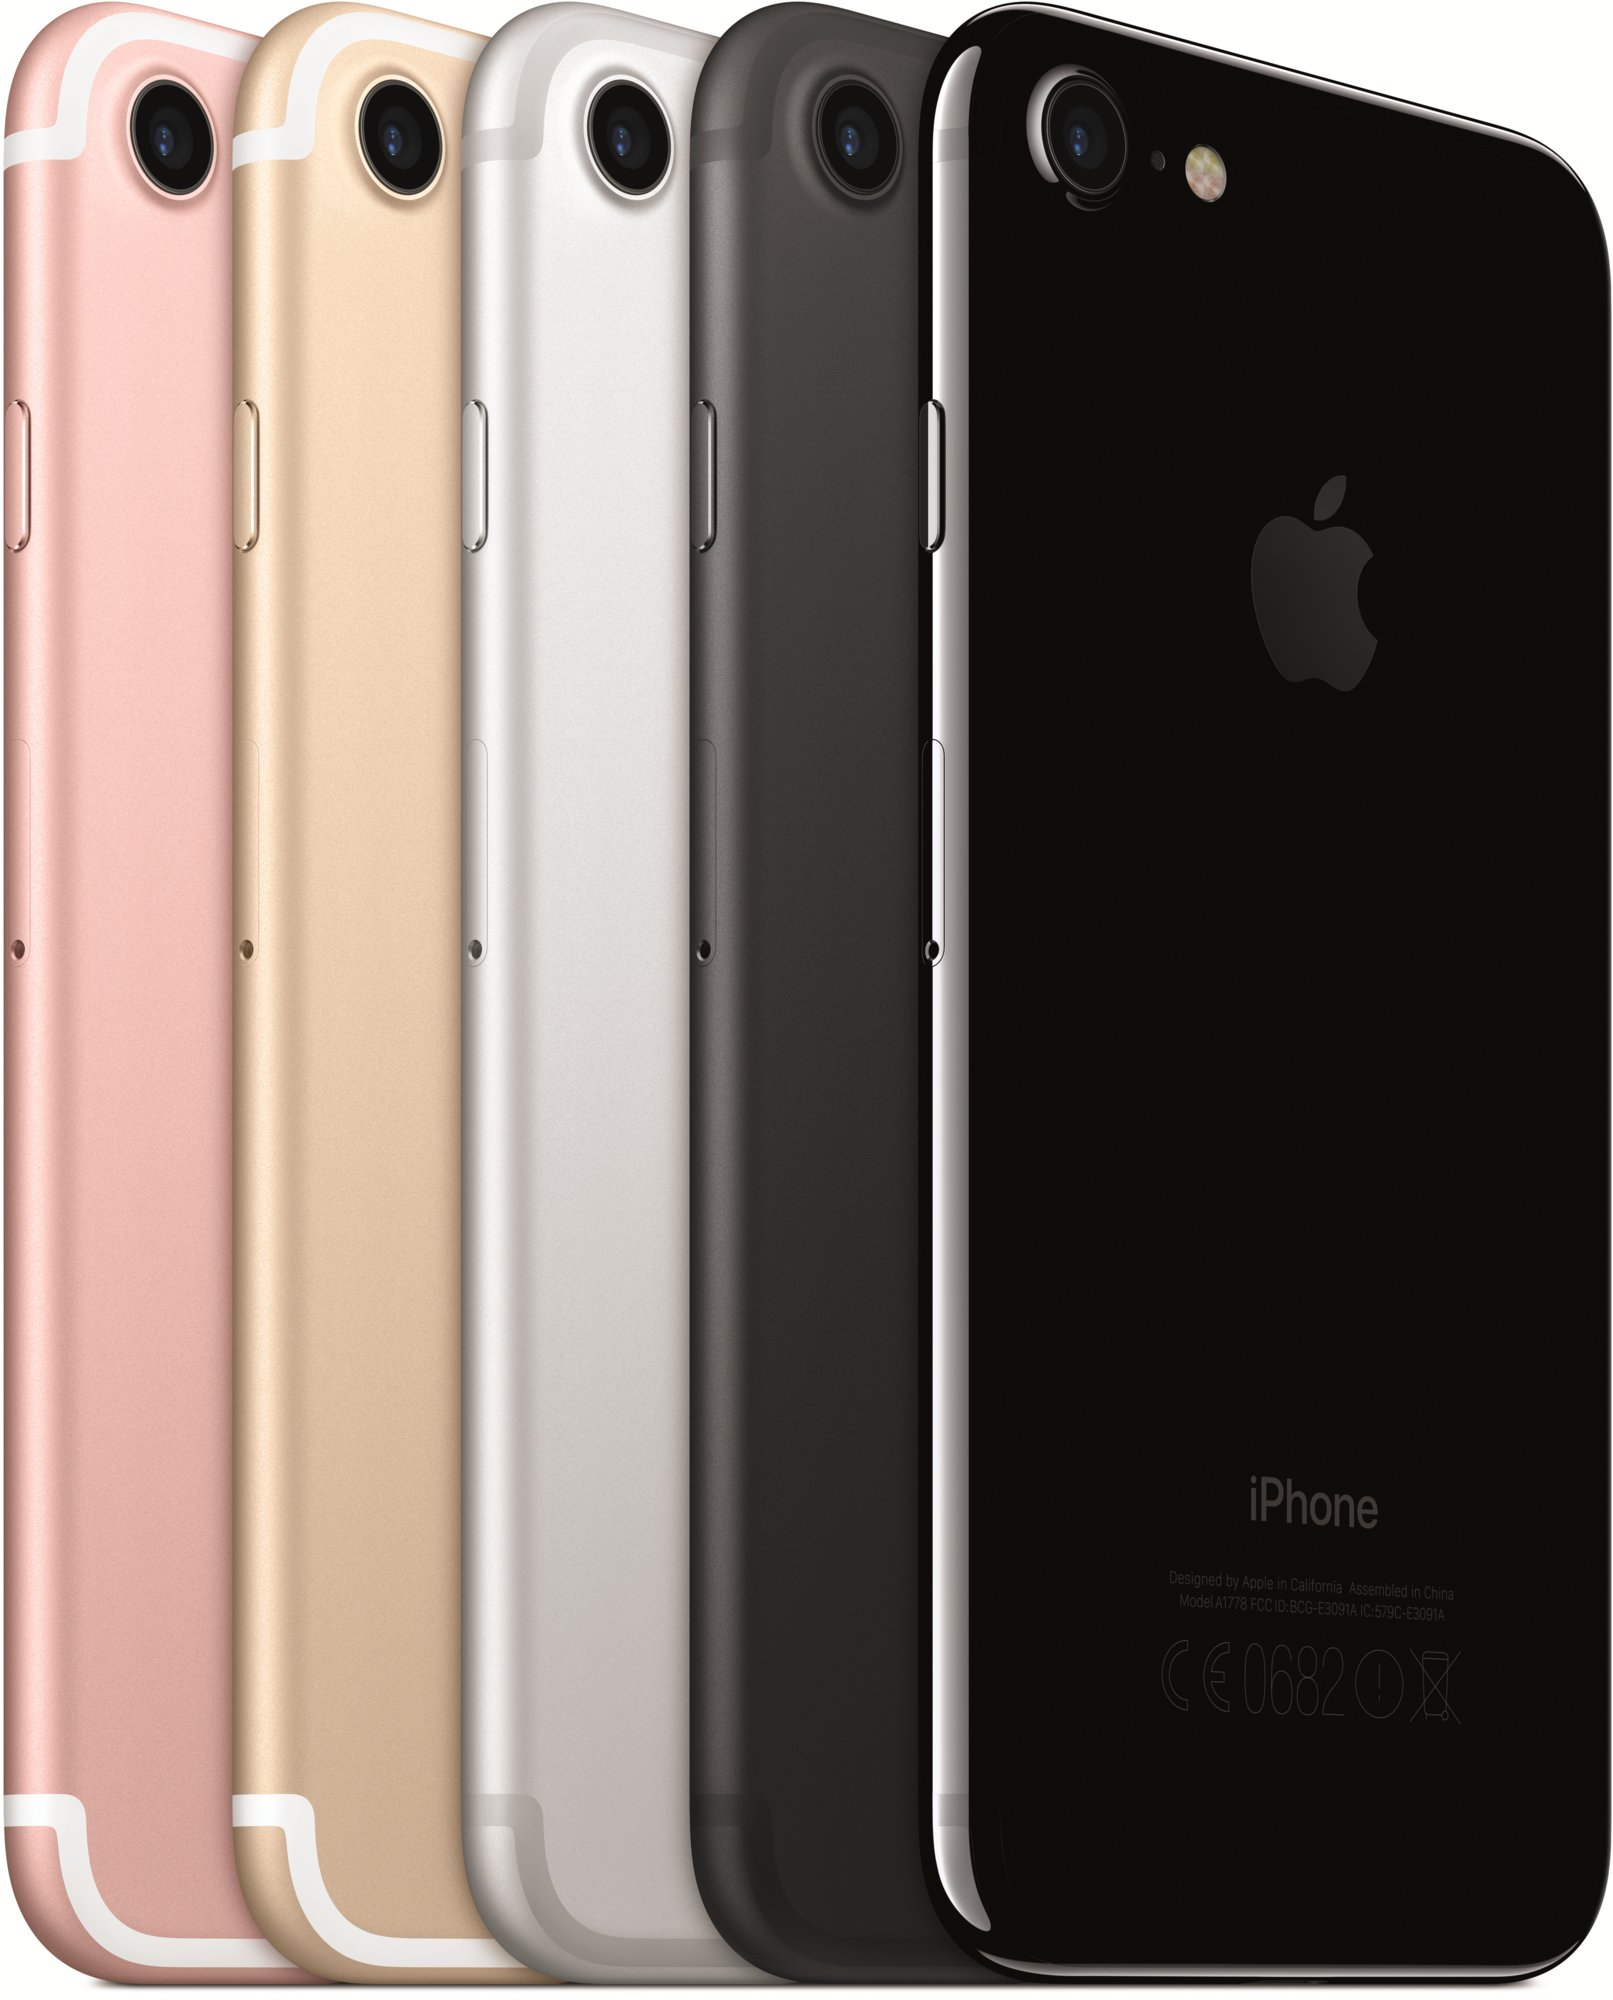 Apple iPhone 7 32GB Rose Gold - Apple iPhone - Mobilné telefóny   F ... 3a0dccbaedb